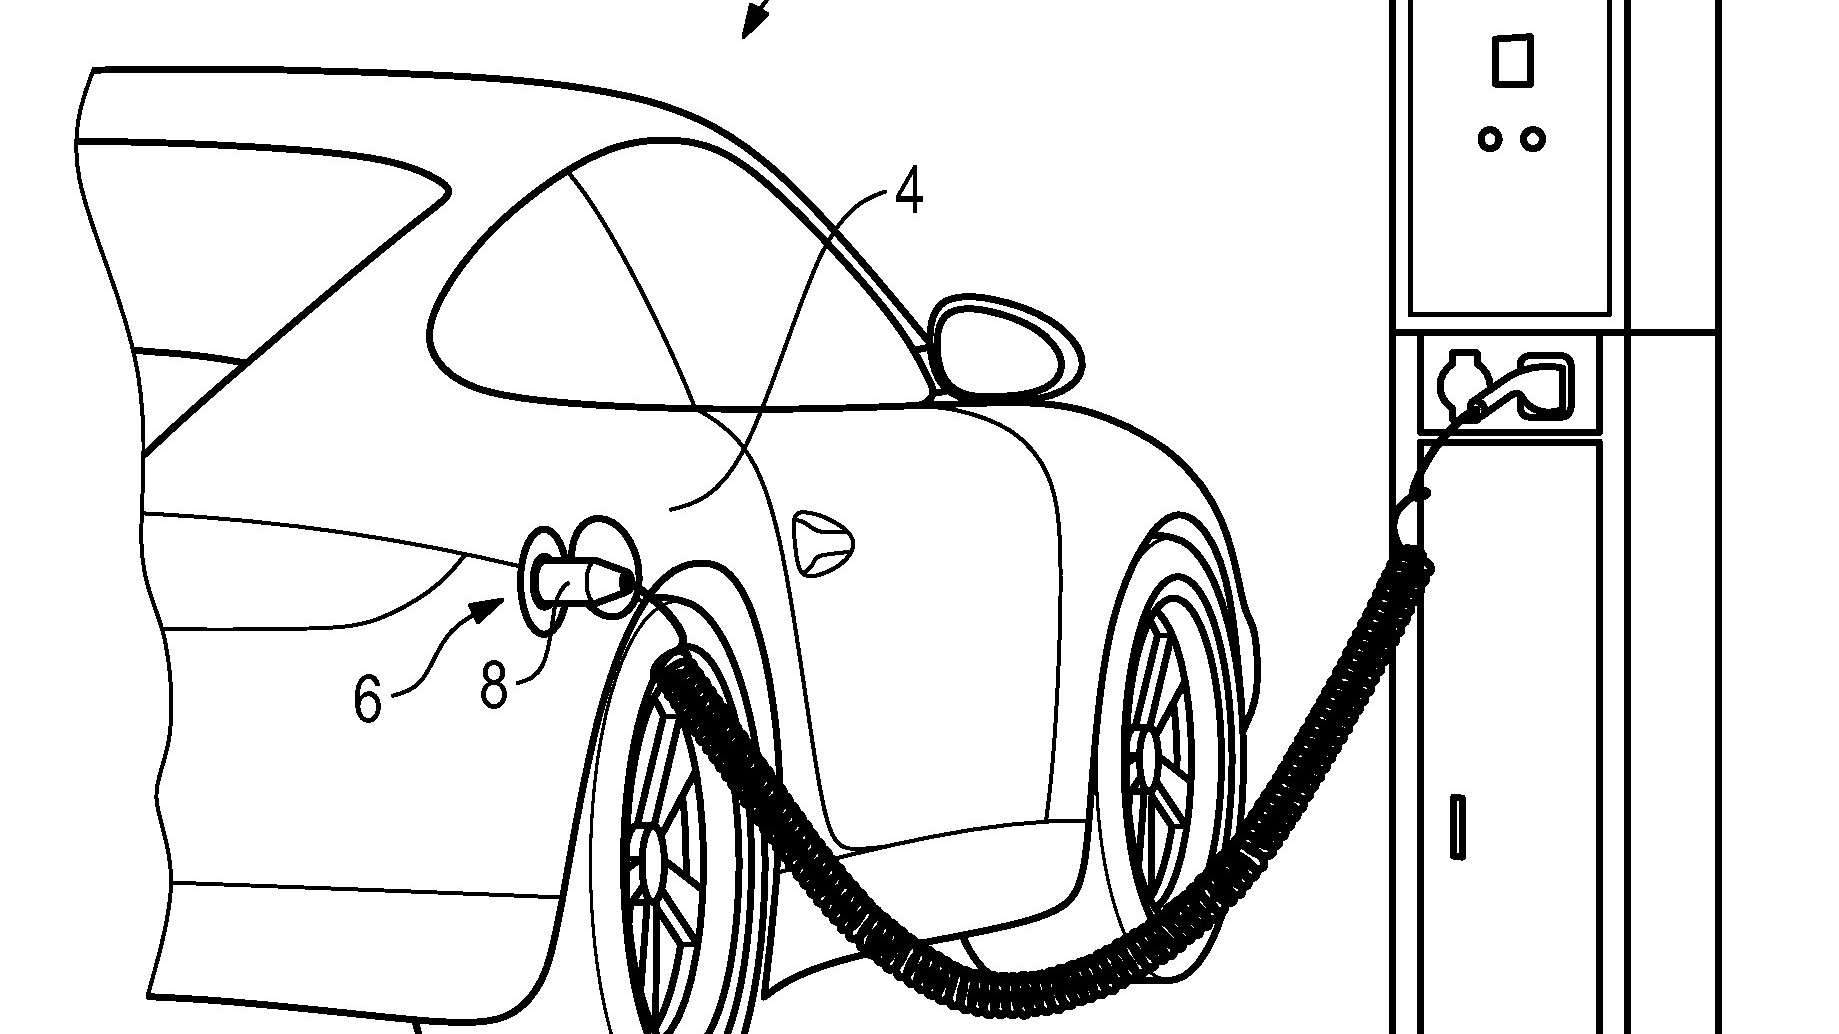 Plug In Porsche 911 Proven By Patent Drawings Not Quite